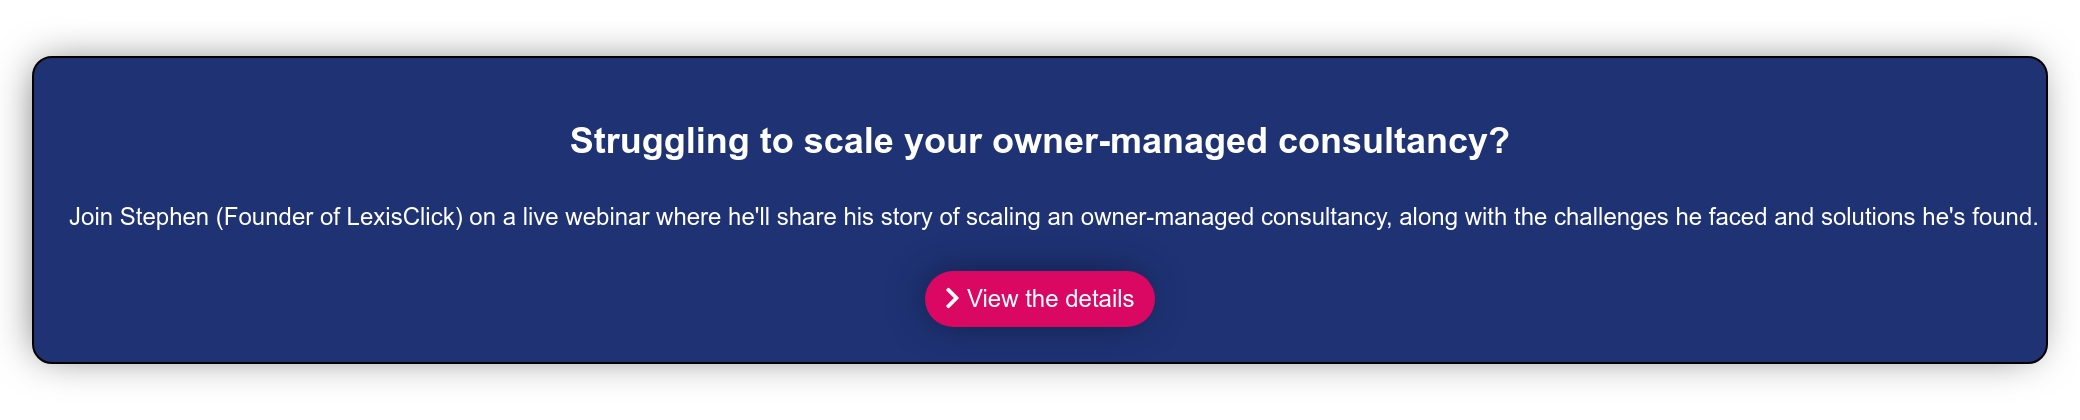 A proven strategy to scaling an owner-managed consultancy.  Join Stephen (Founder of LexisClick) on a live webinar where he'll share his  story of scaling an owner-managed consultancy, along with the challenges he  faced and solutions he's found.    View the details